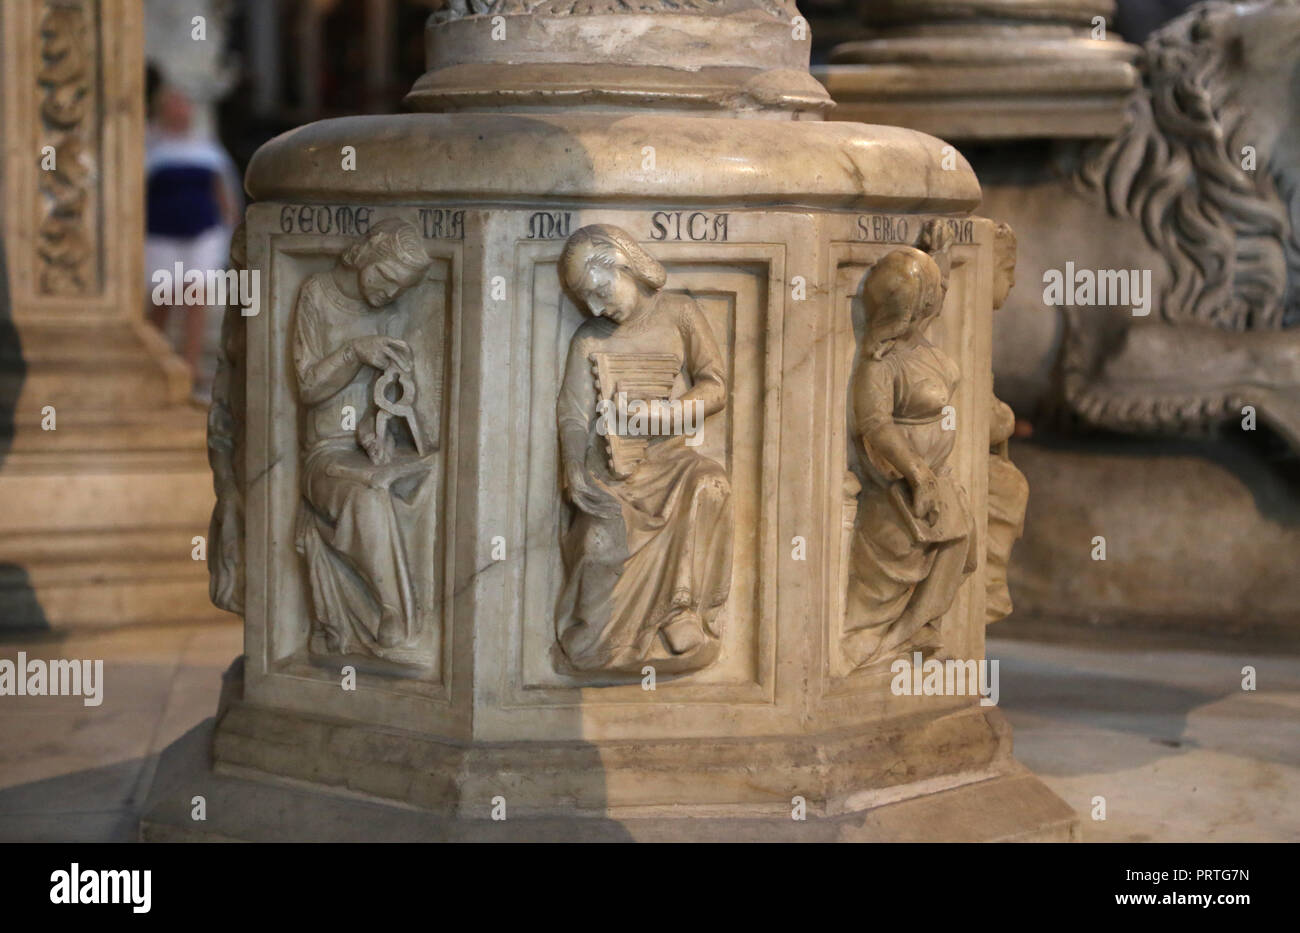 Italy. Pisa. The pulppit of Pisa Cathedral. By Giovanni Pisano (c.1250-1315). Gothic style. Detail. Allegory to music and geometry. - Stock Image